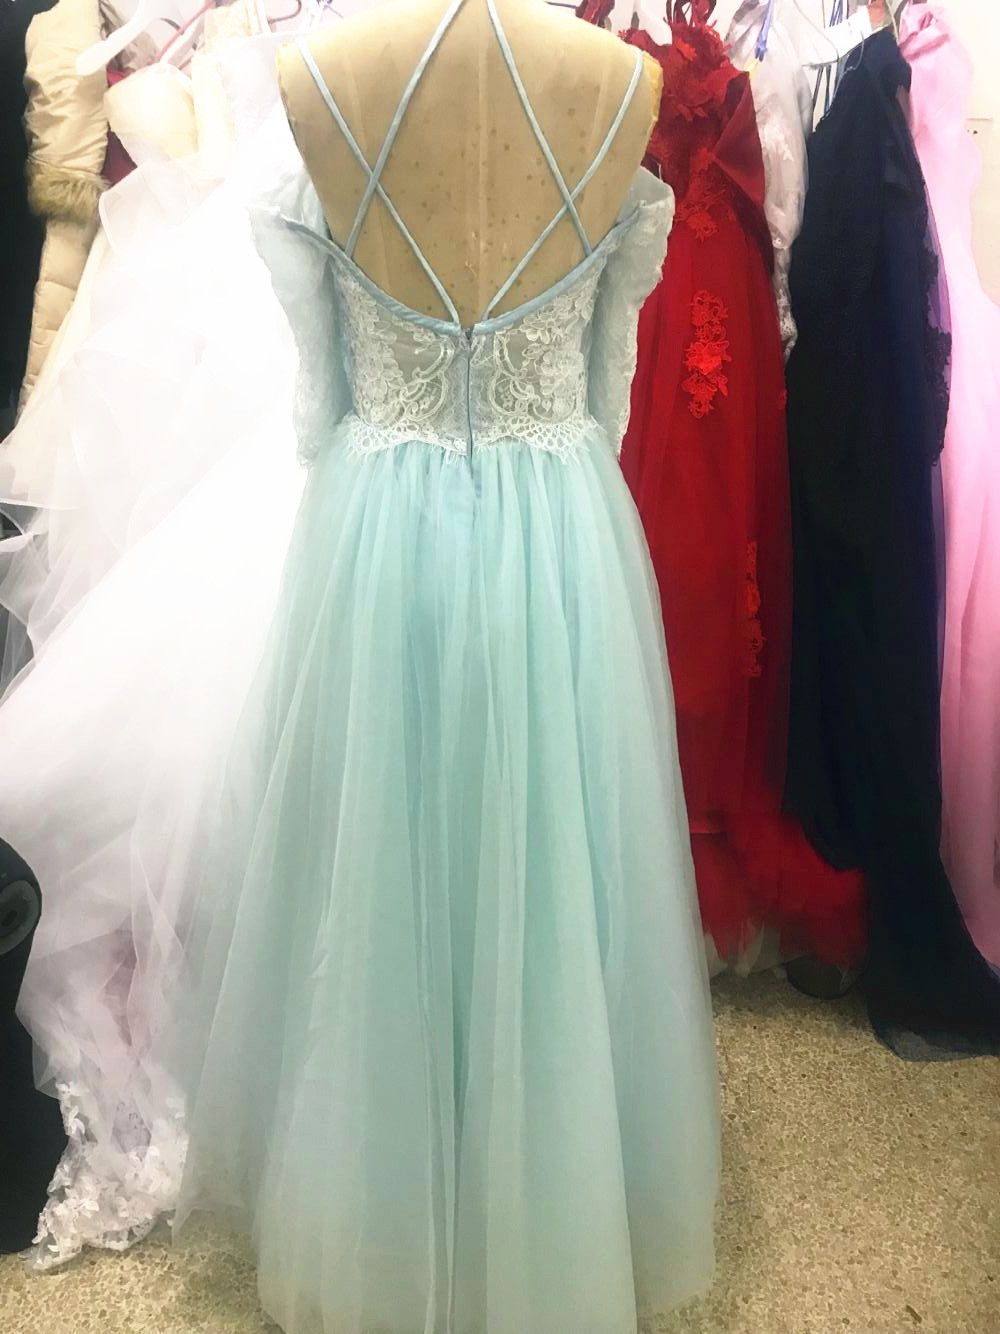 2020 cheap Prom Dresses Robe De Soiree A Line Evening Formal Gown lace three quarter Sleeves prom Dress